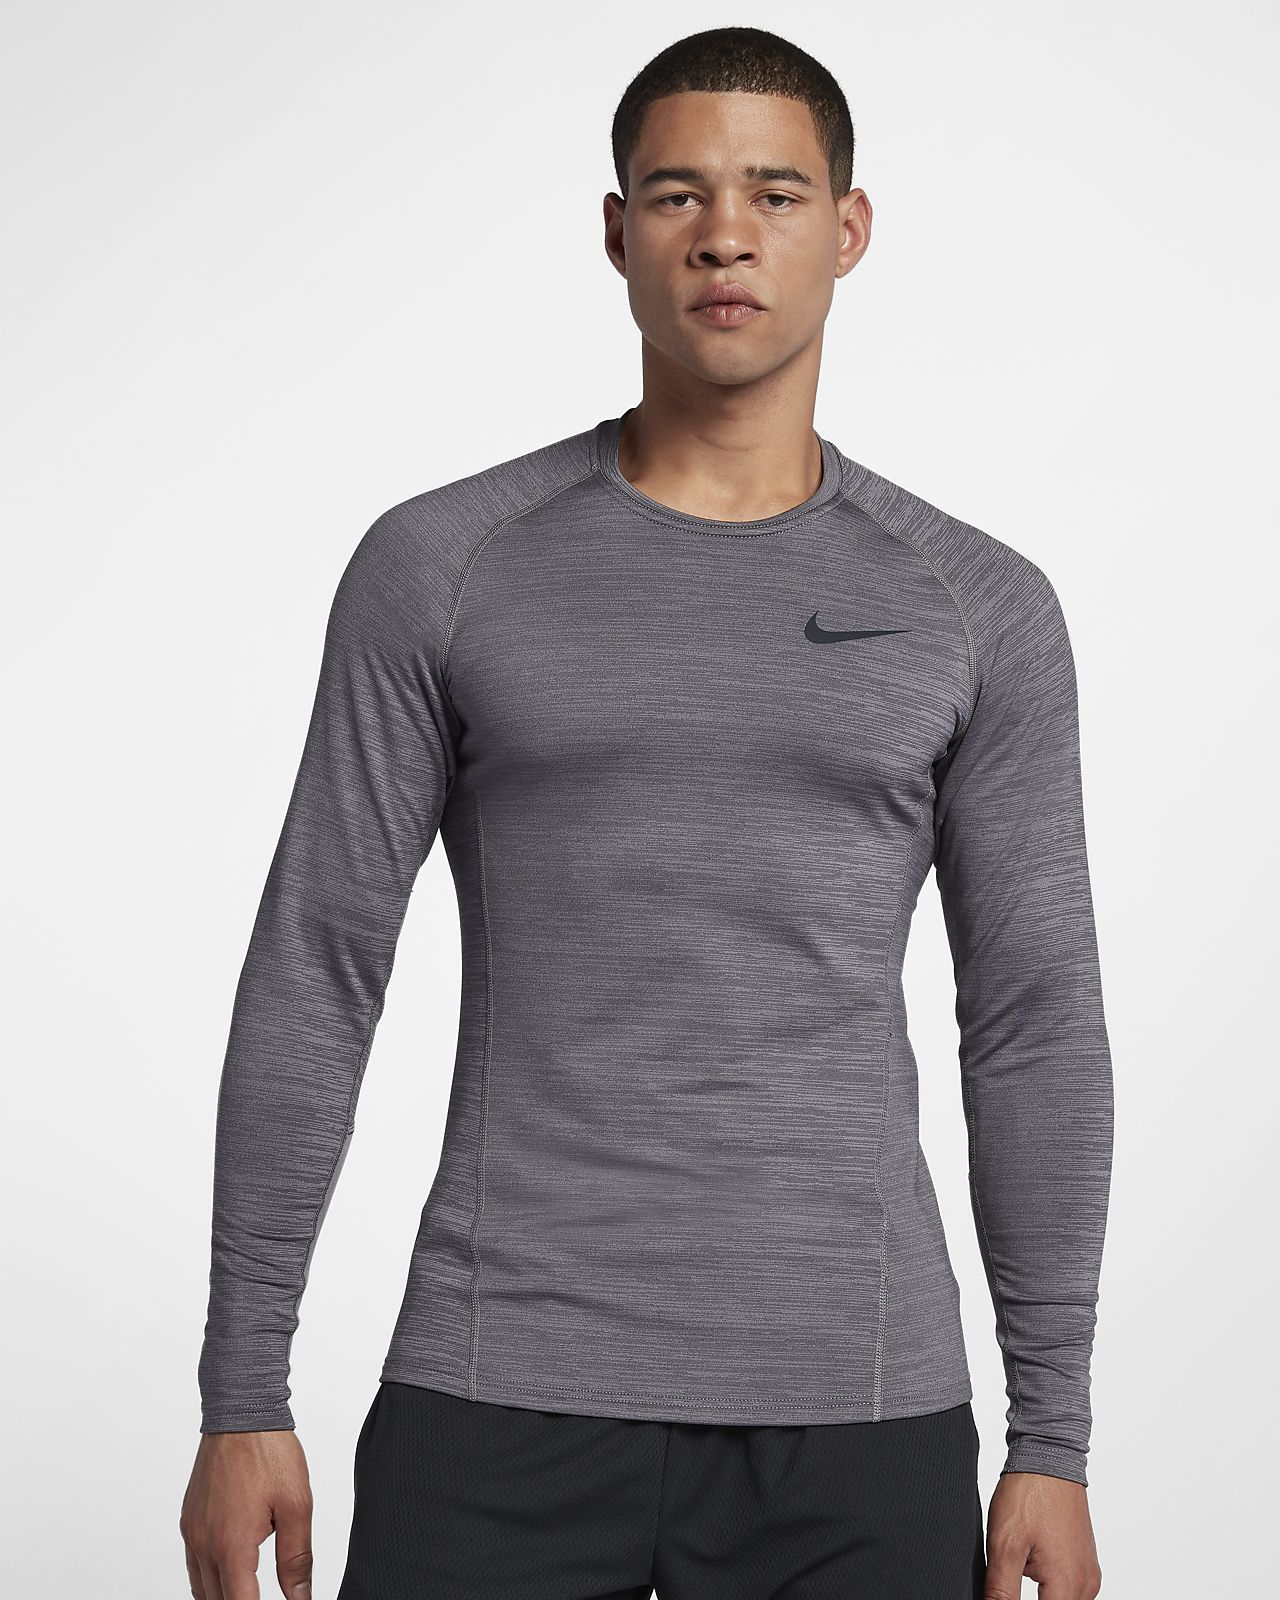 Men/'s T-Shirt Basic Long Sleeve Blouse Tops Crew Neck Slim Fit Muscle Clothing